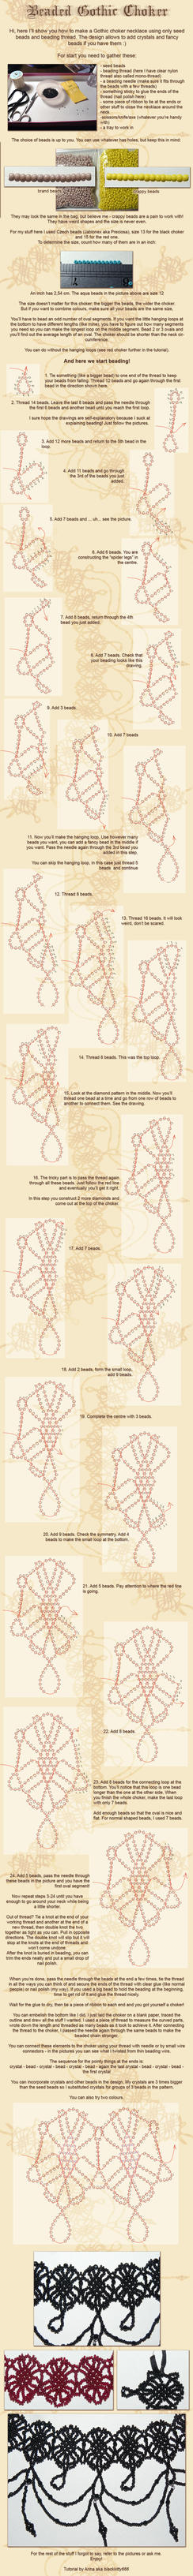 Beaded choker tutorial by la-chatte-noire